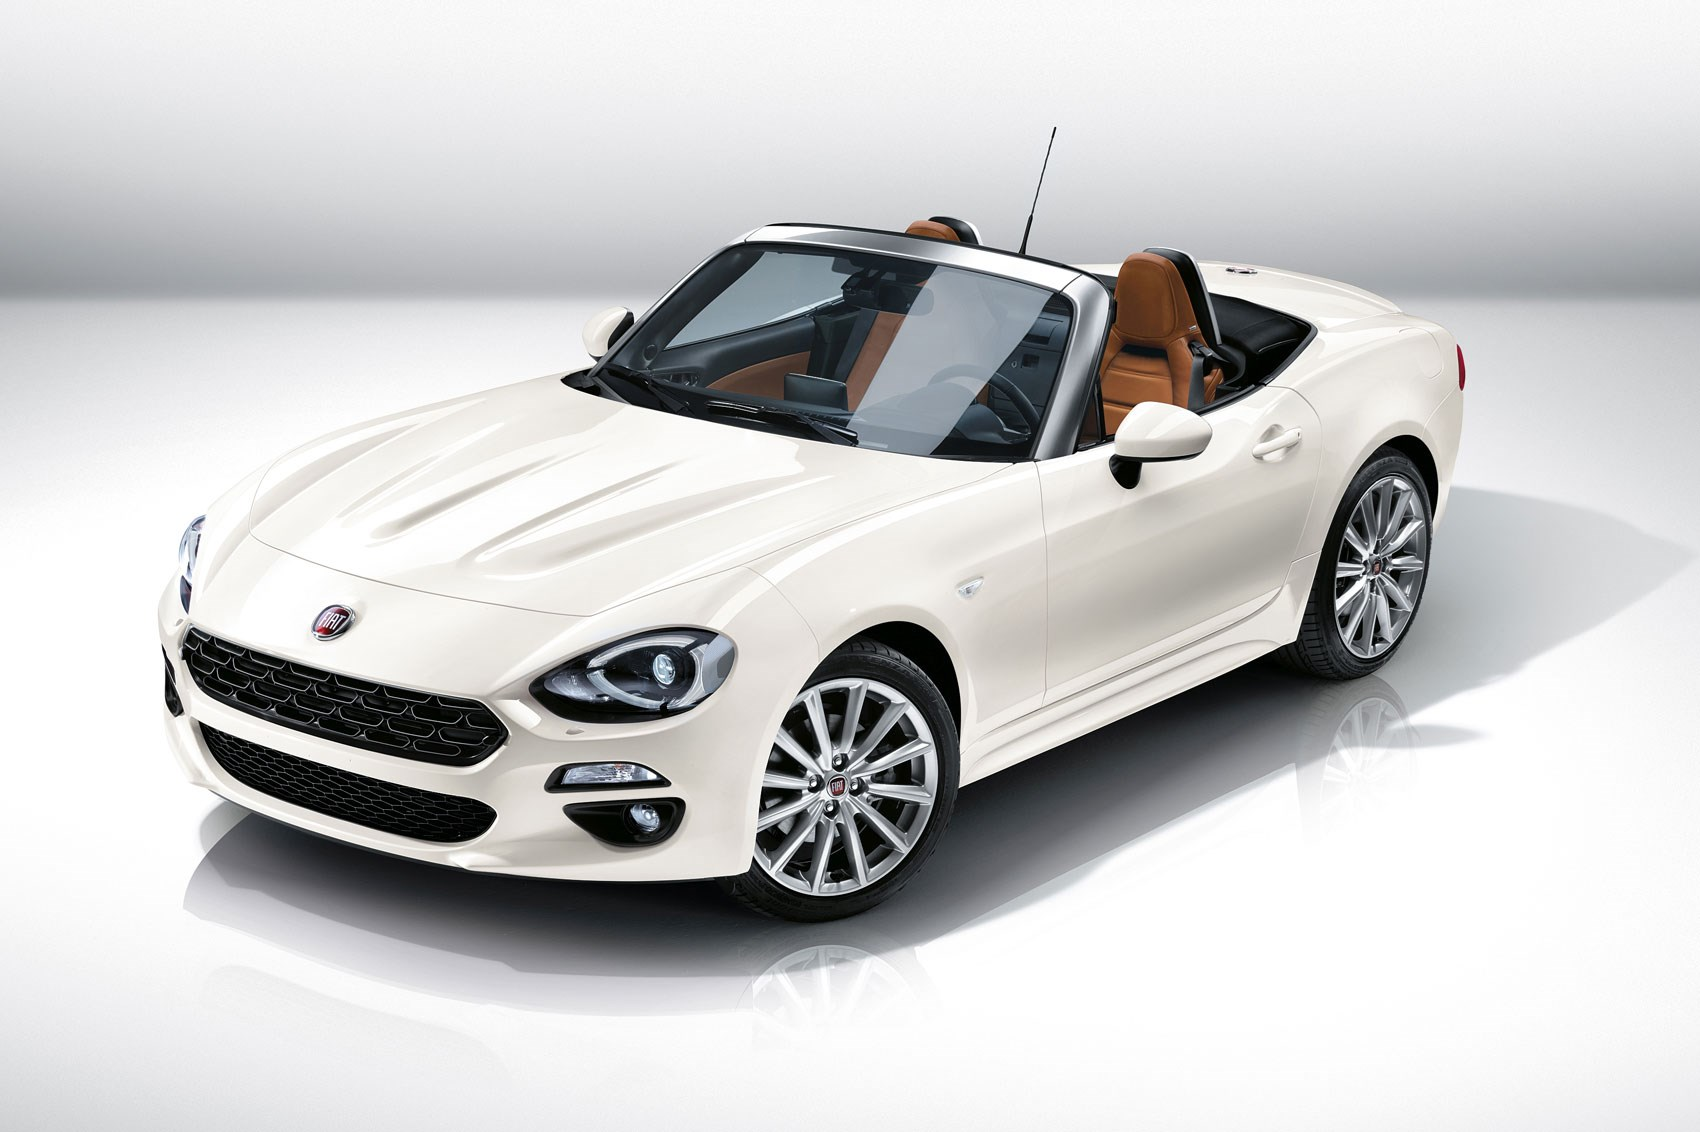 fiat 124 spider revealed at 2015 la show fiat s mx 5. Black Bedroom Furniture Sets. Home Design Ideas